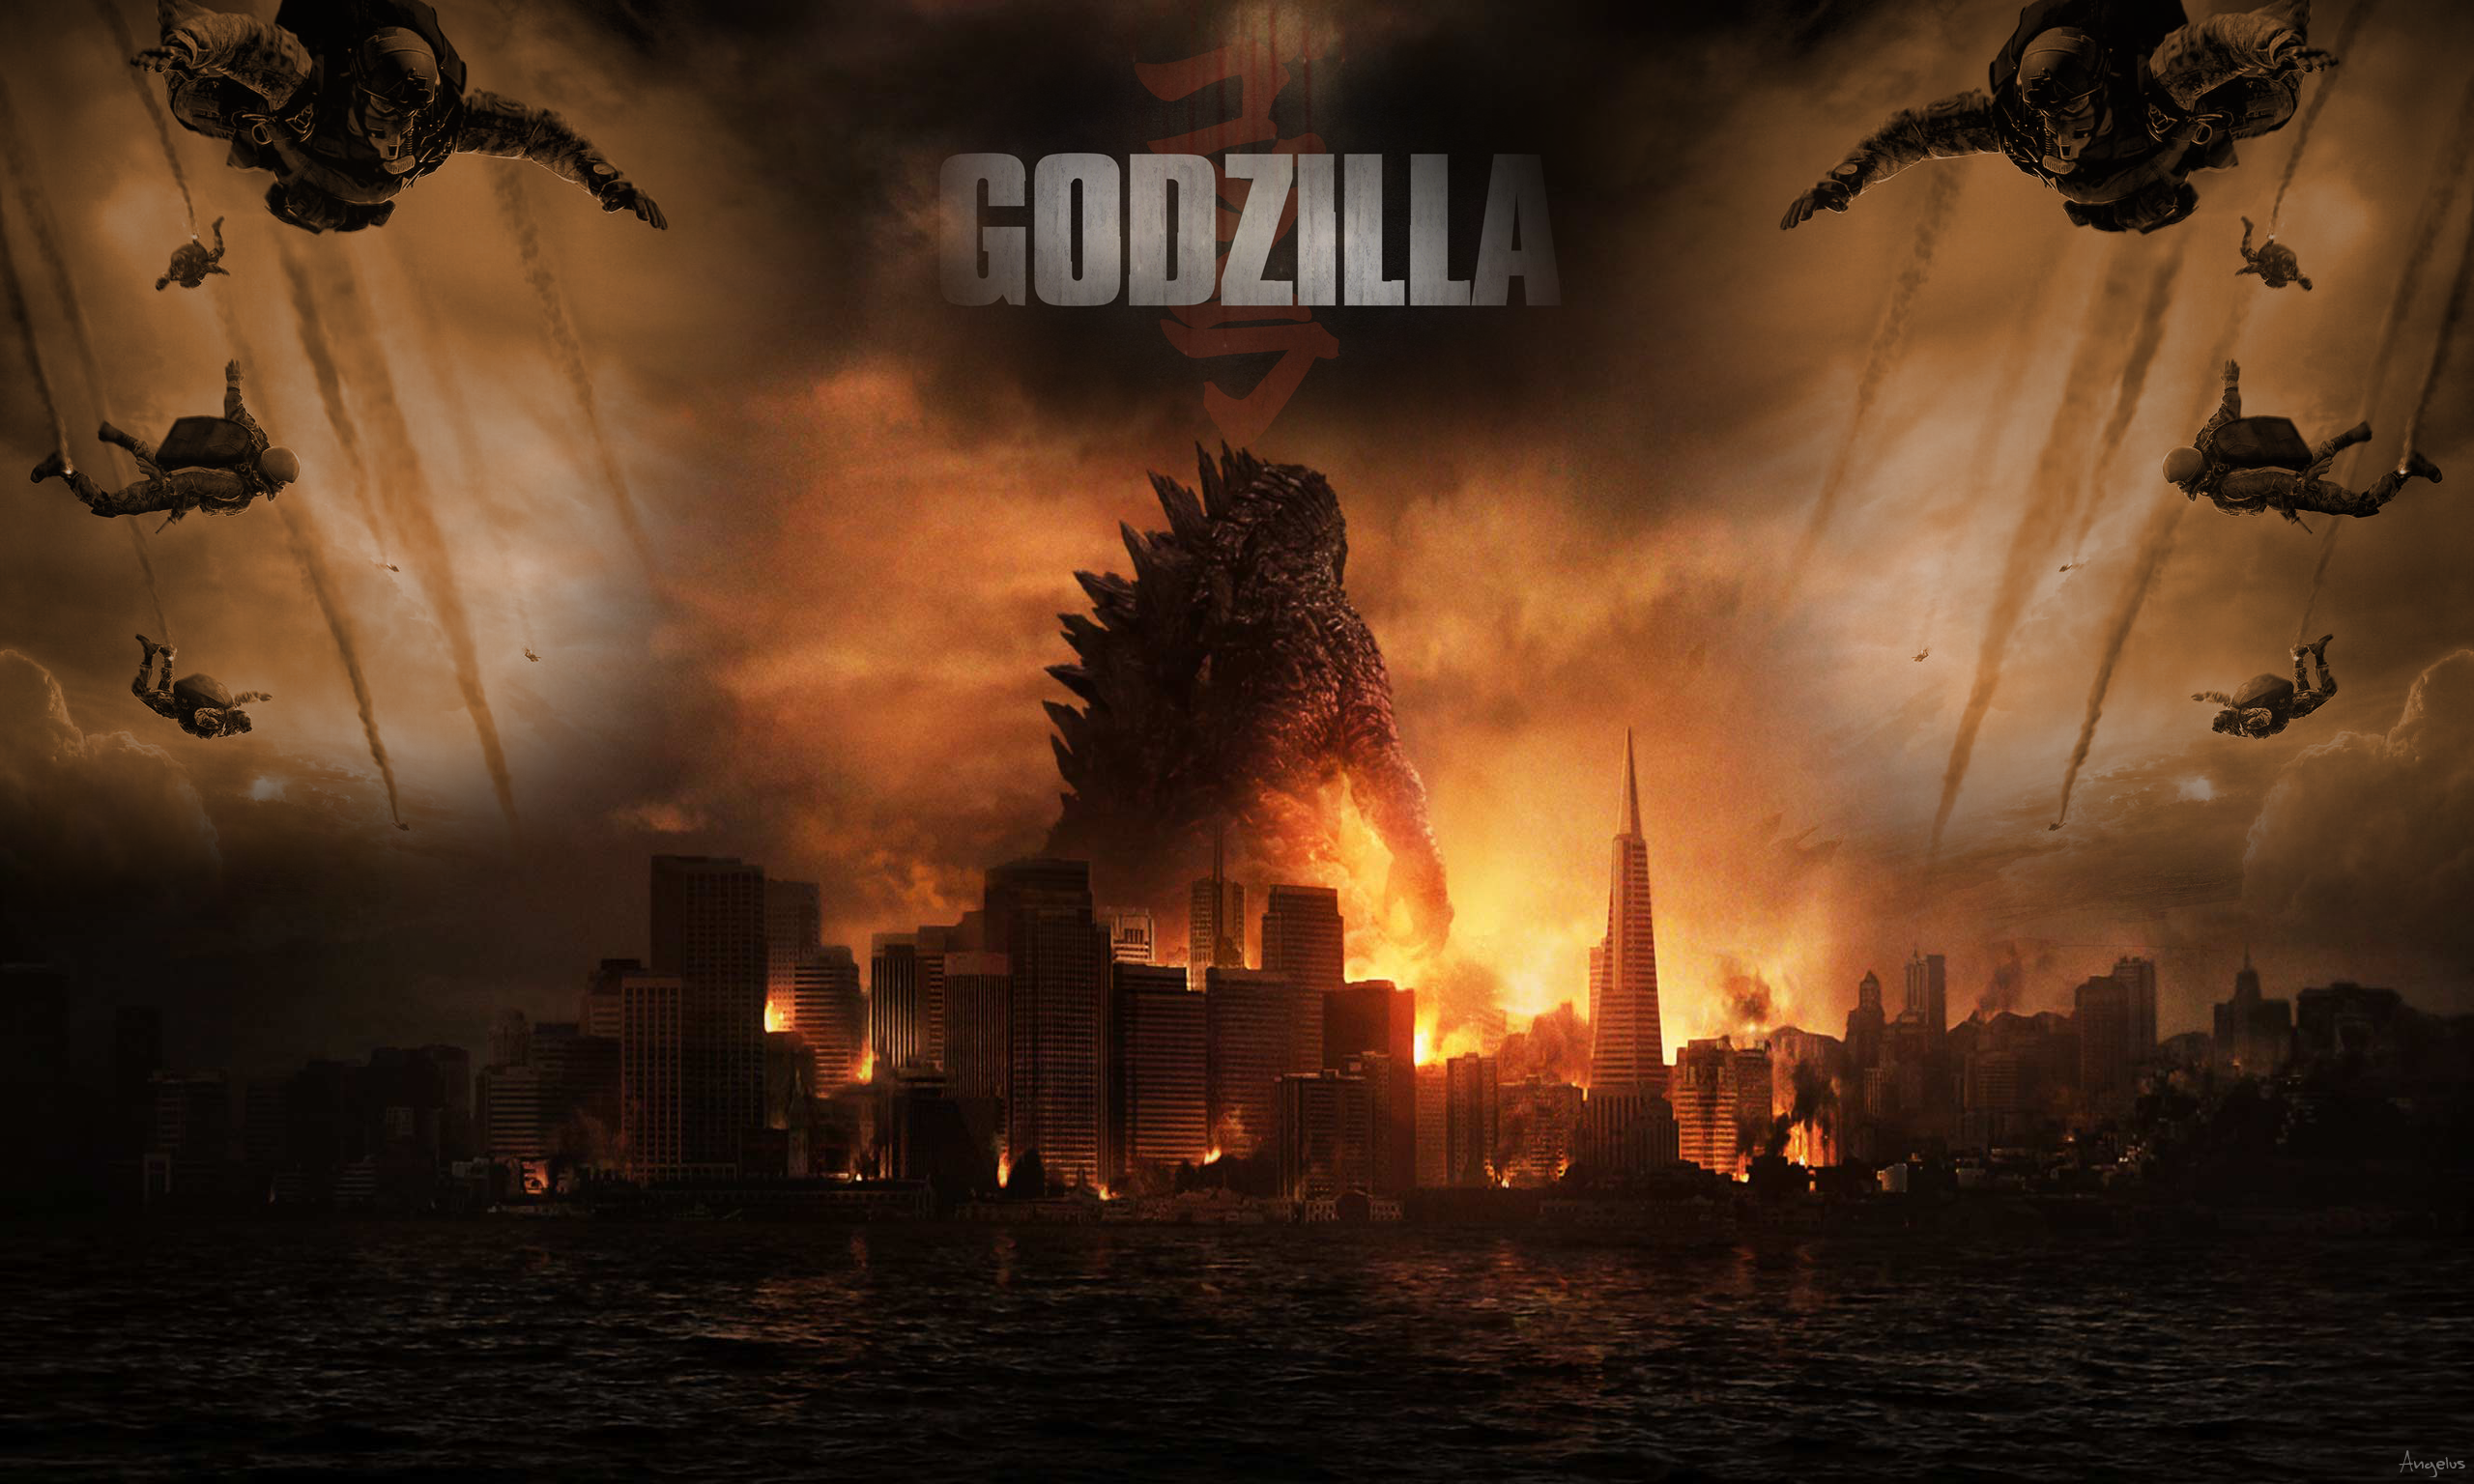 Godzilla 2014 Movie Wallpaper Godzilla 2014 Wallpape...